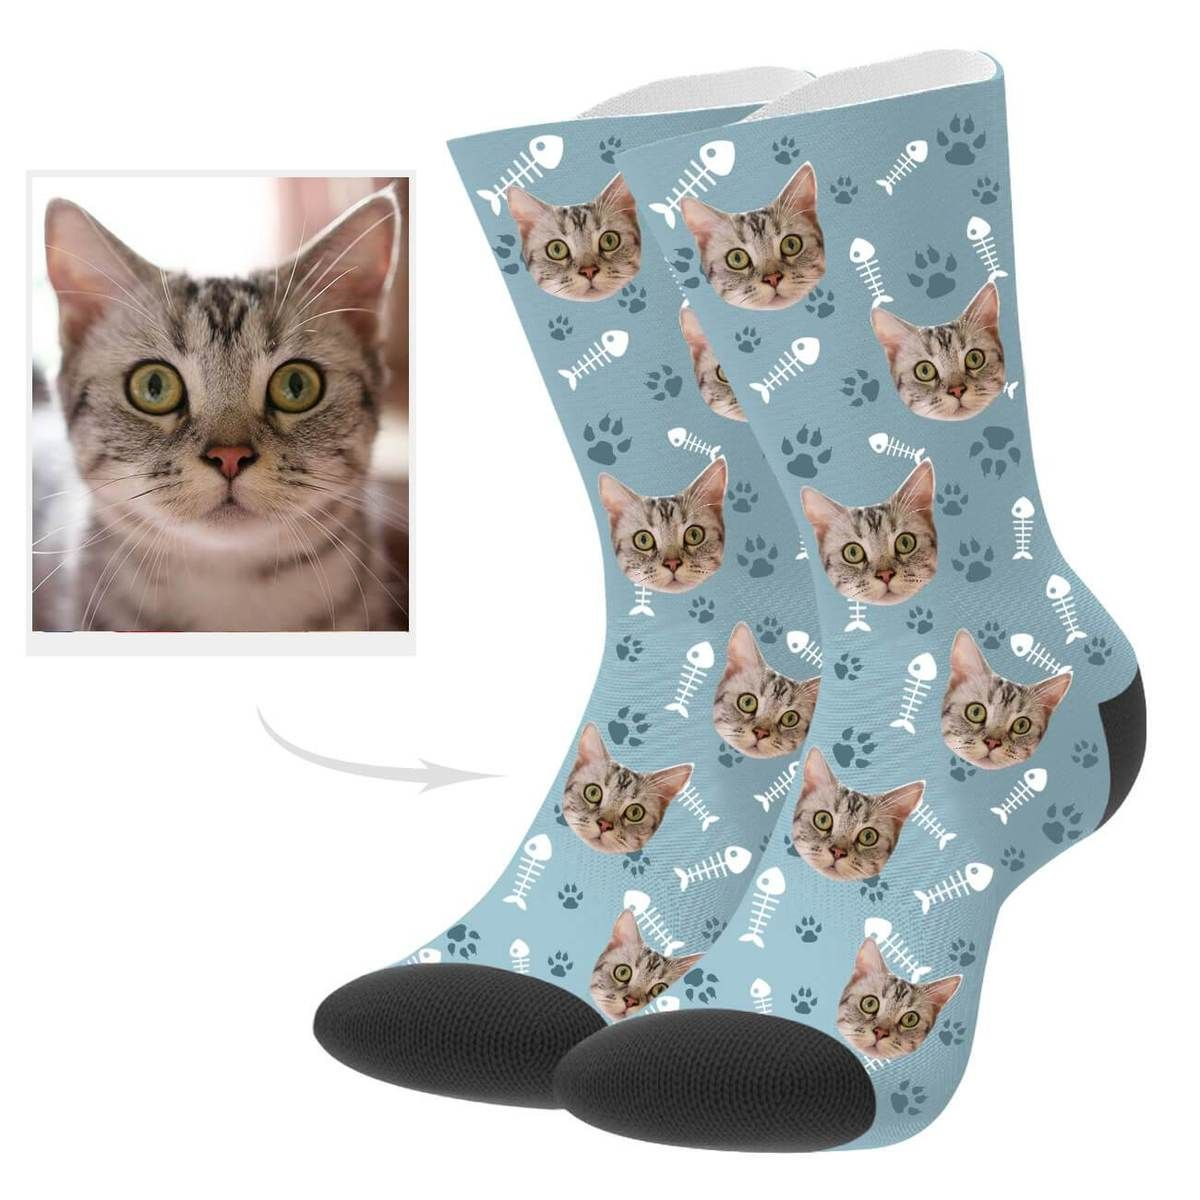 Customized Cat Photo Socks Socks, Cute pattern, Sock crafts